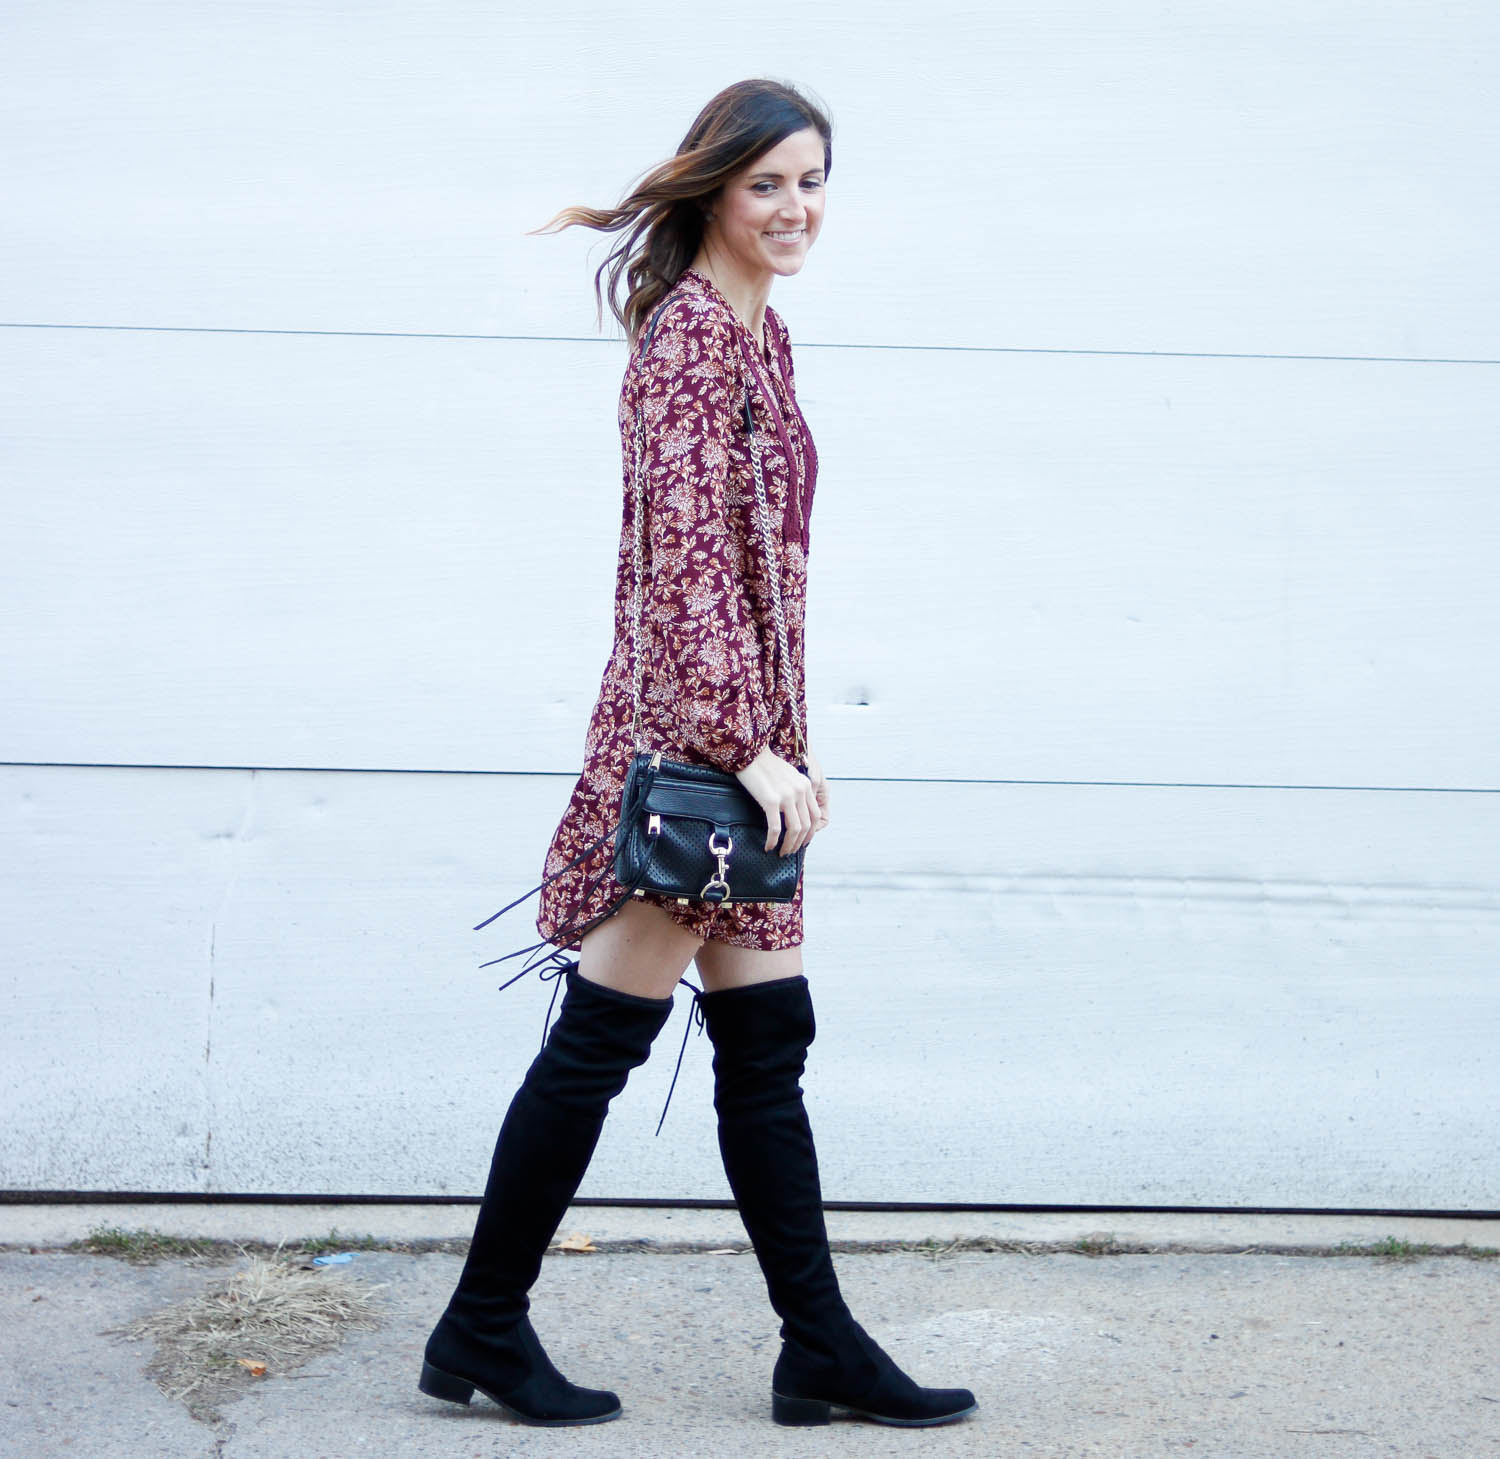 Maroon dress paired with over the knee boots and a Rebecca Minkoff bag.